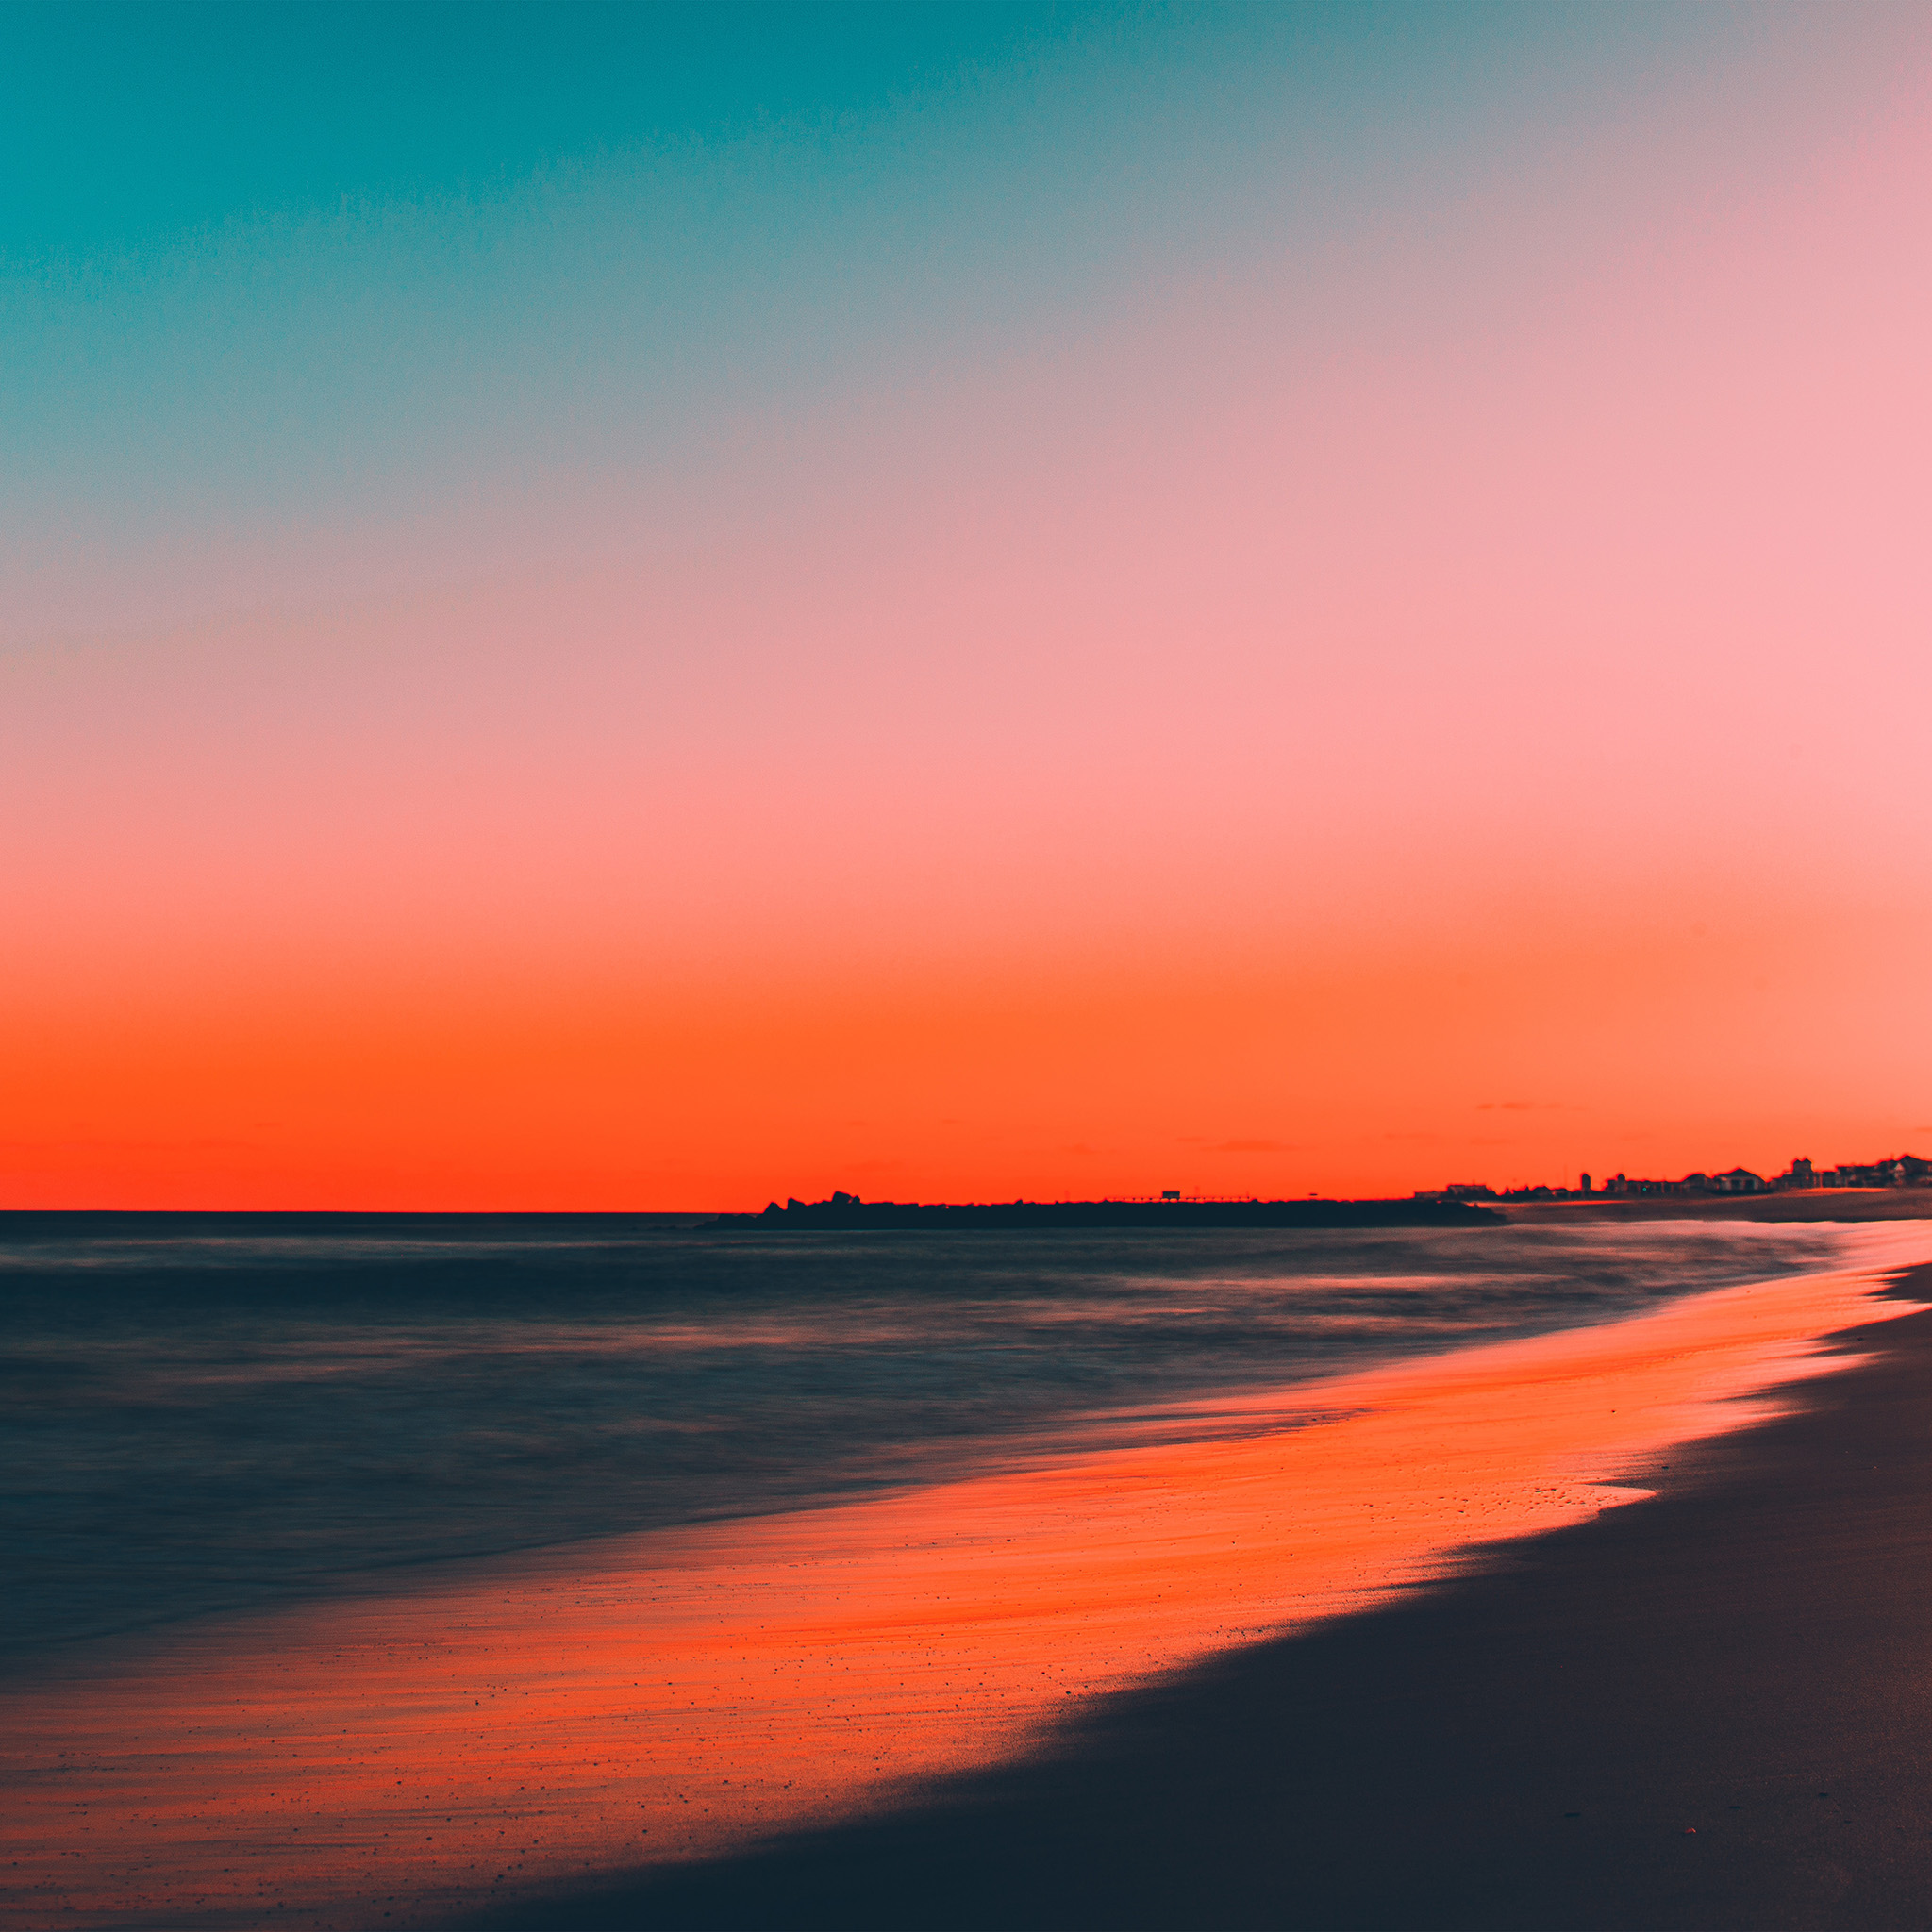 Nu77-sunset-beach-fall-night-sea-nature-wallpaper